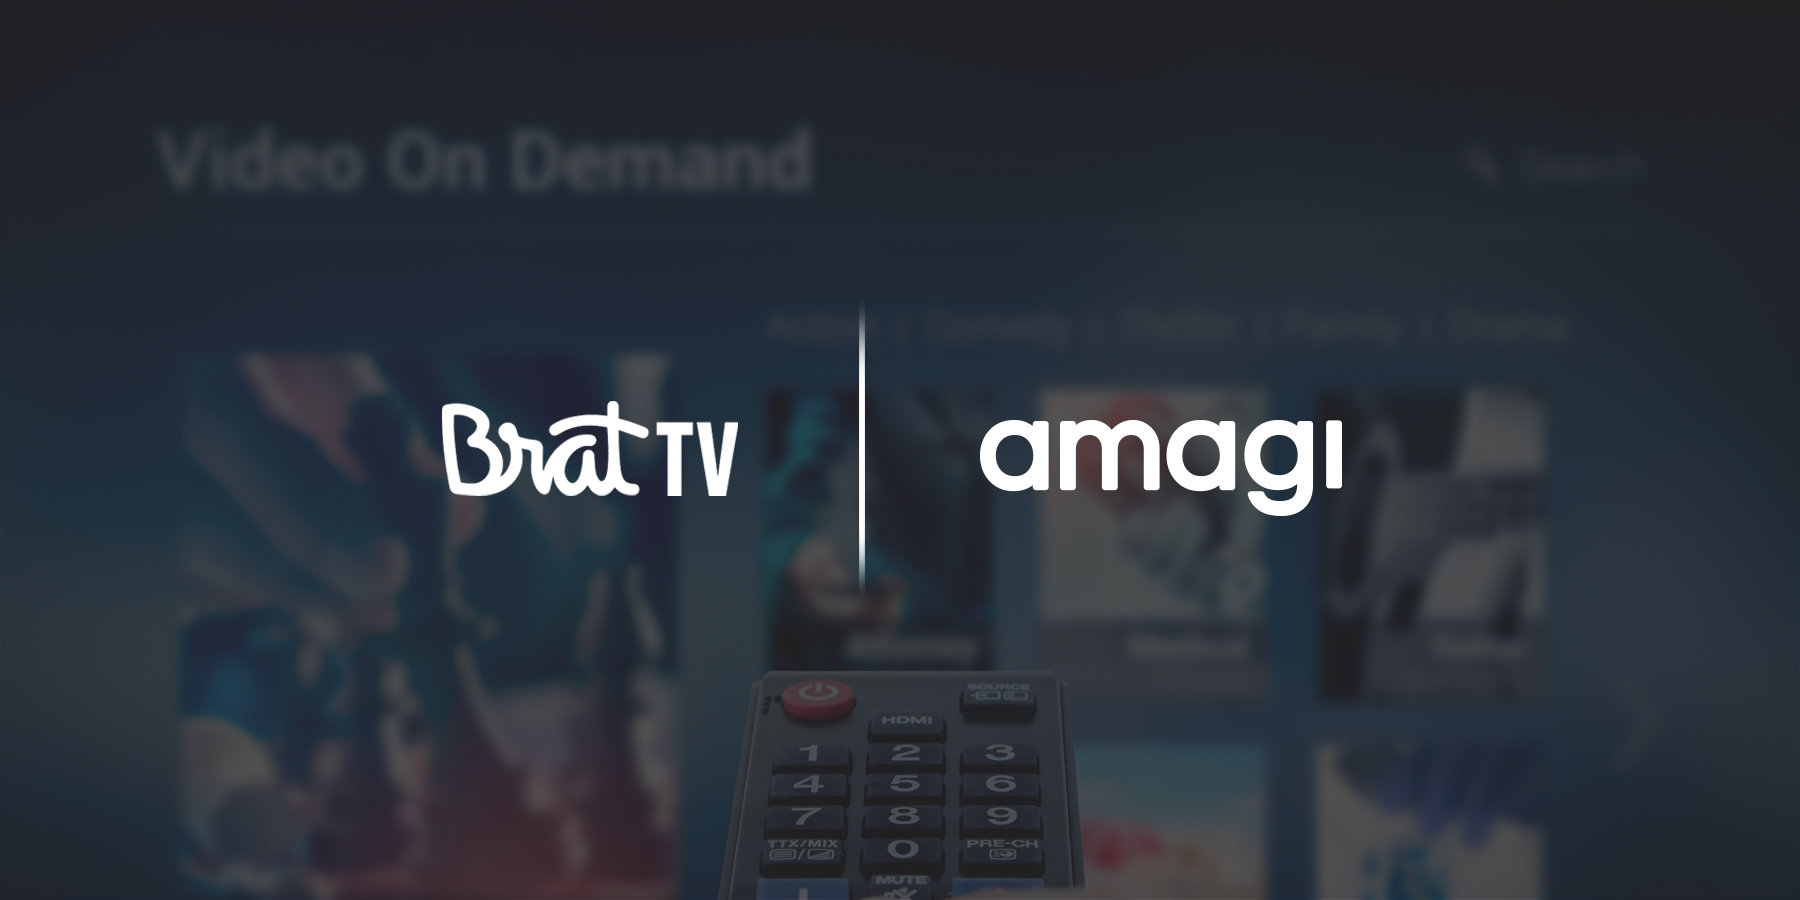 Brat TV Chooses Amagi to Expand its Streaming TV Footprint